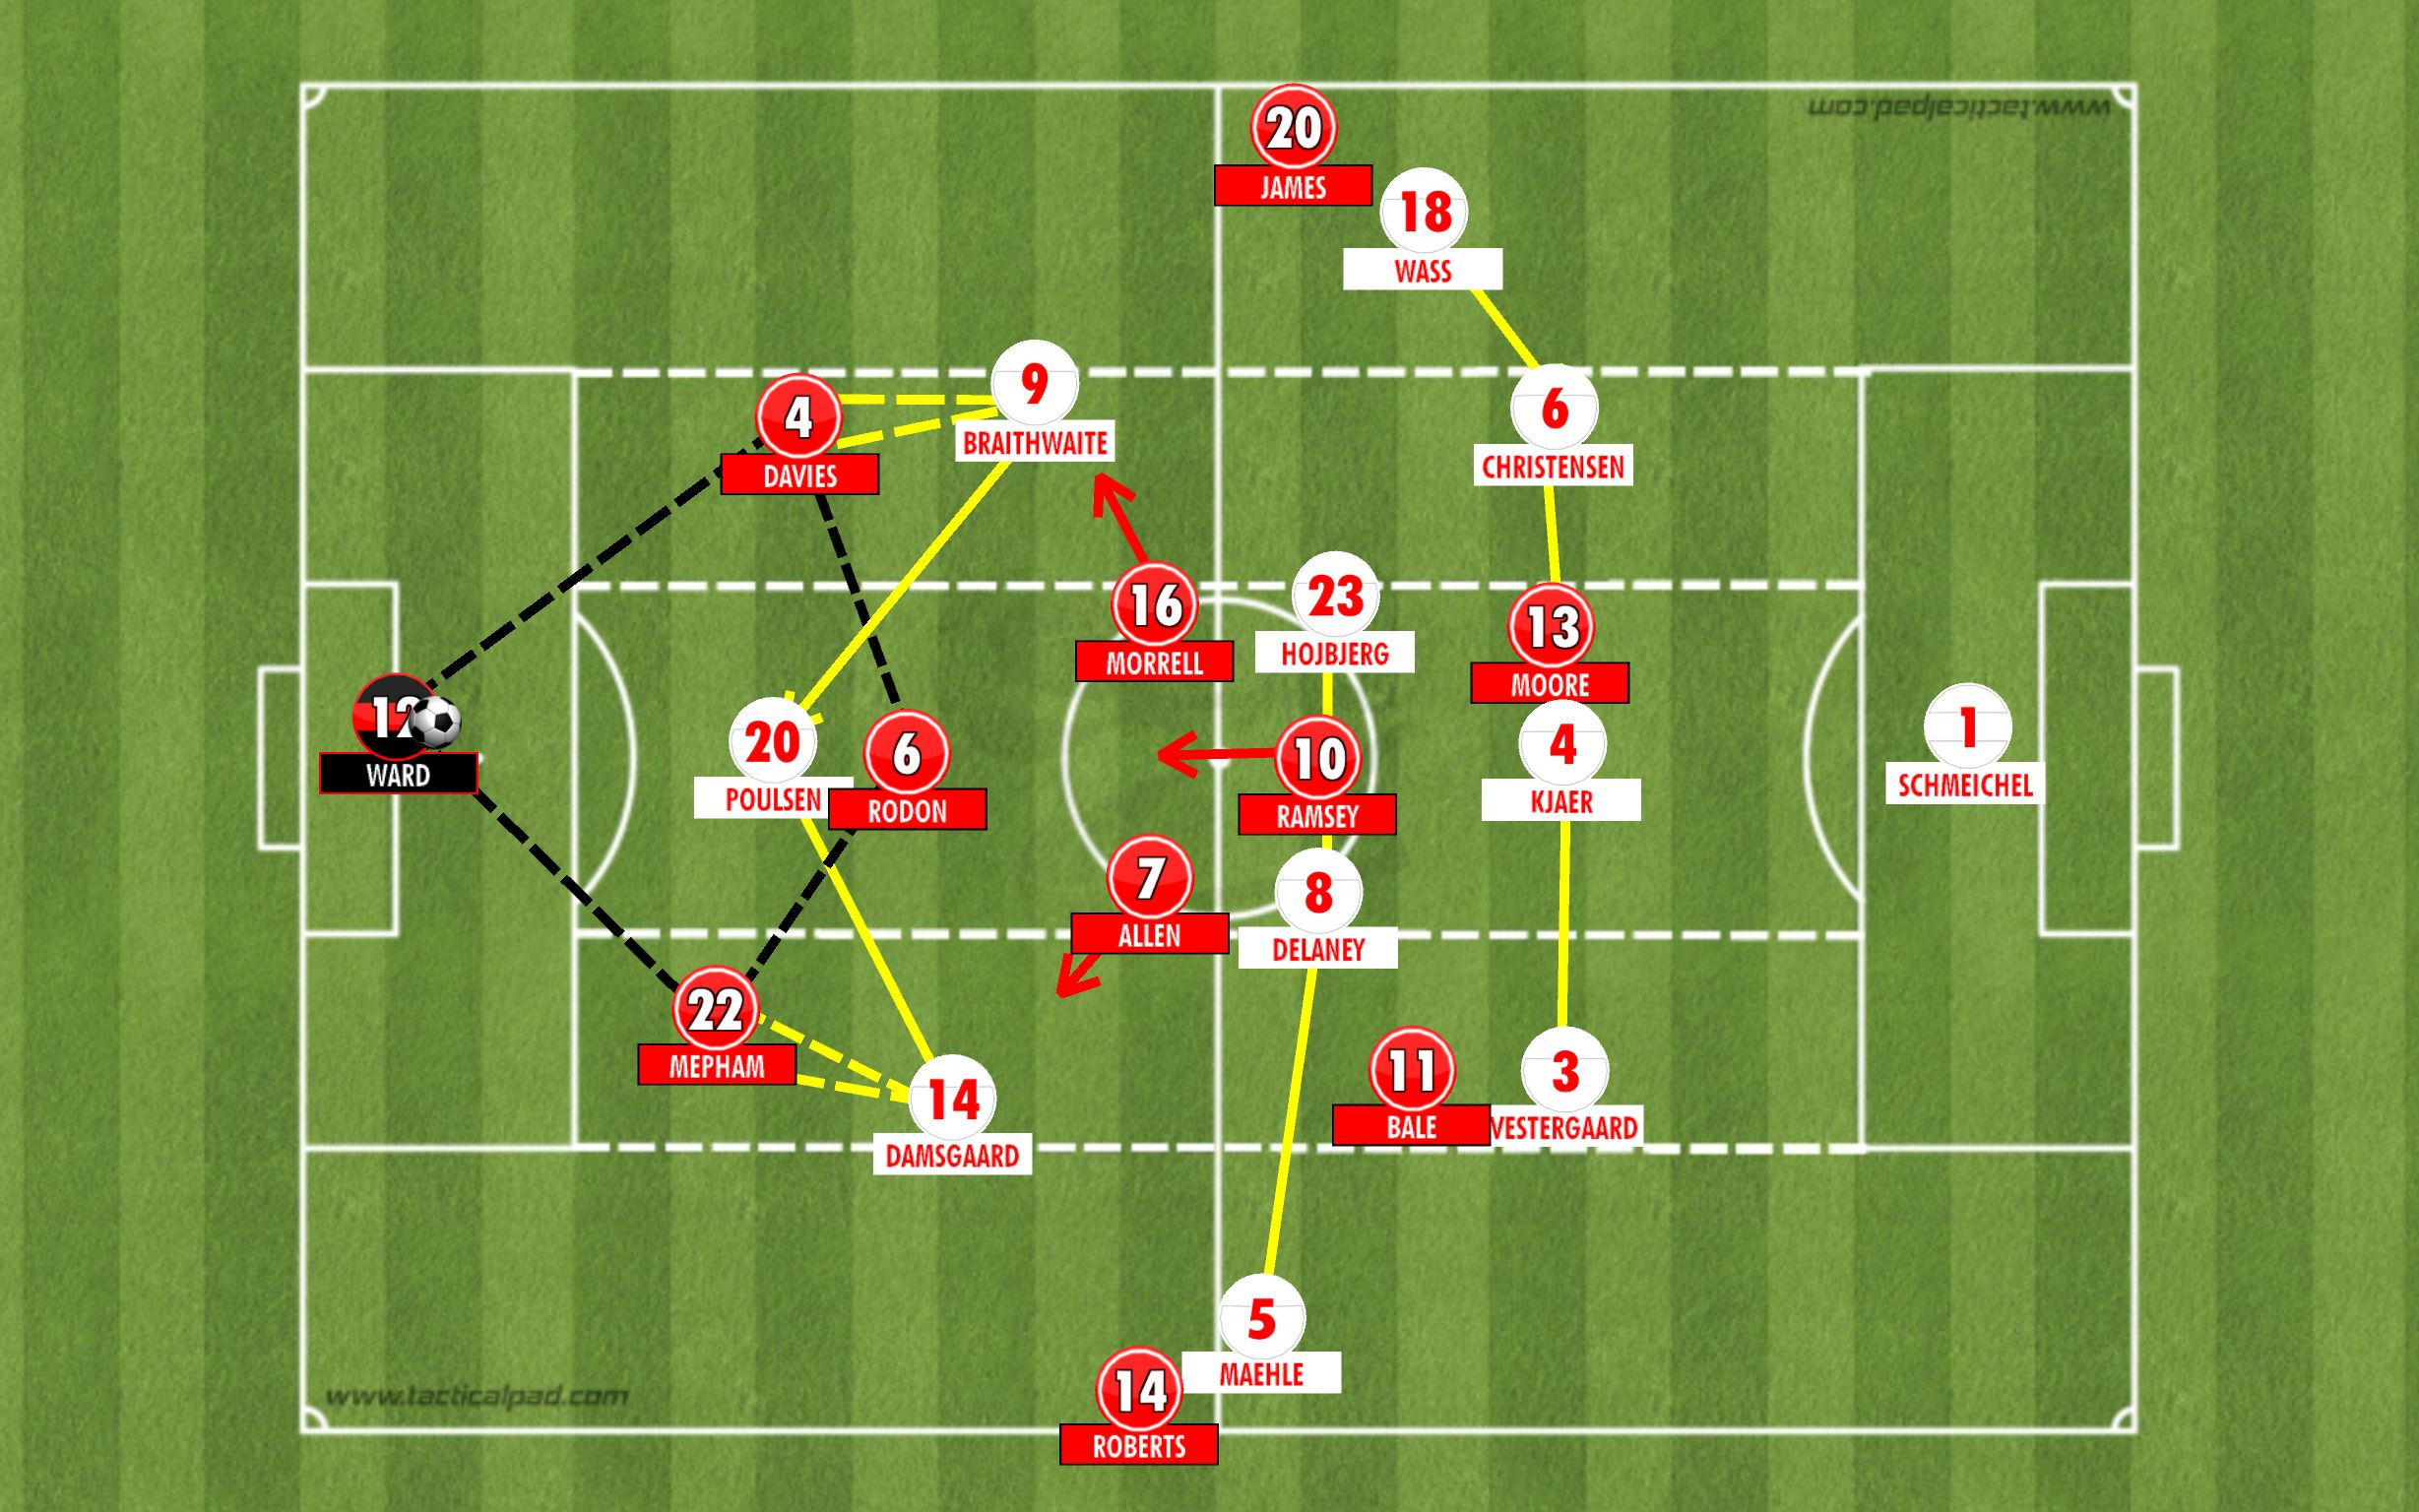 WALES play out from defense